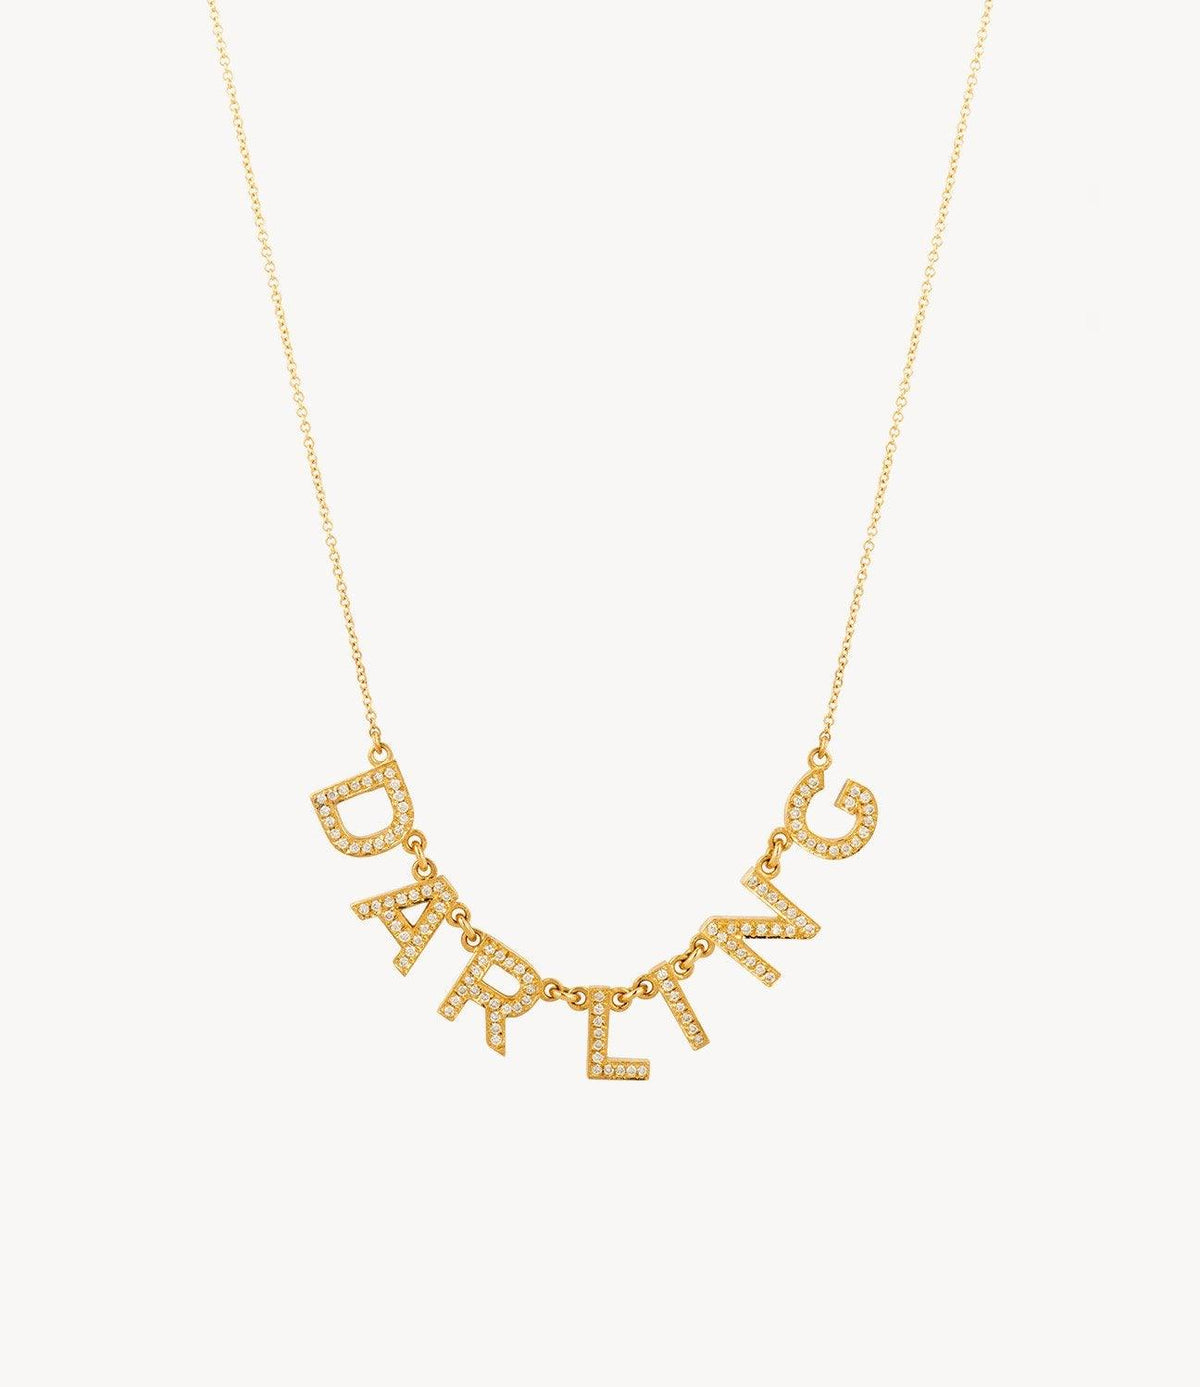 Oh Darling Diamond Necklace